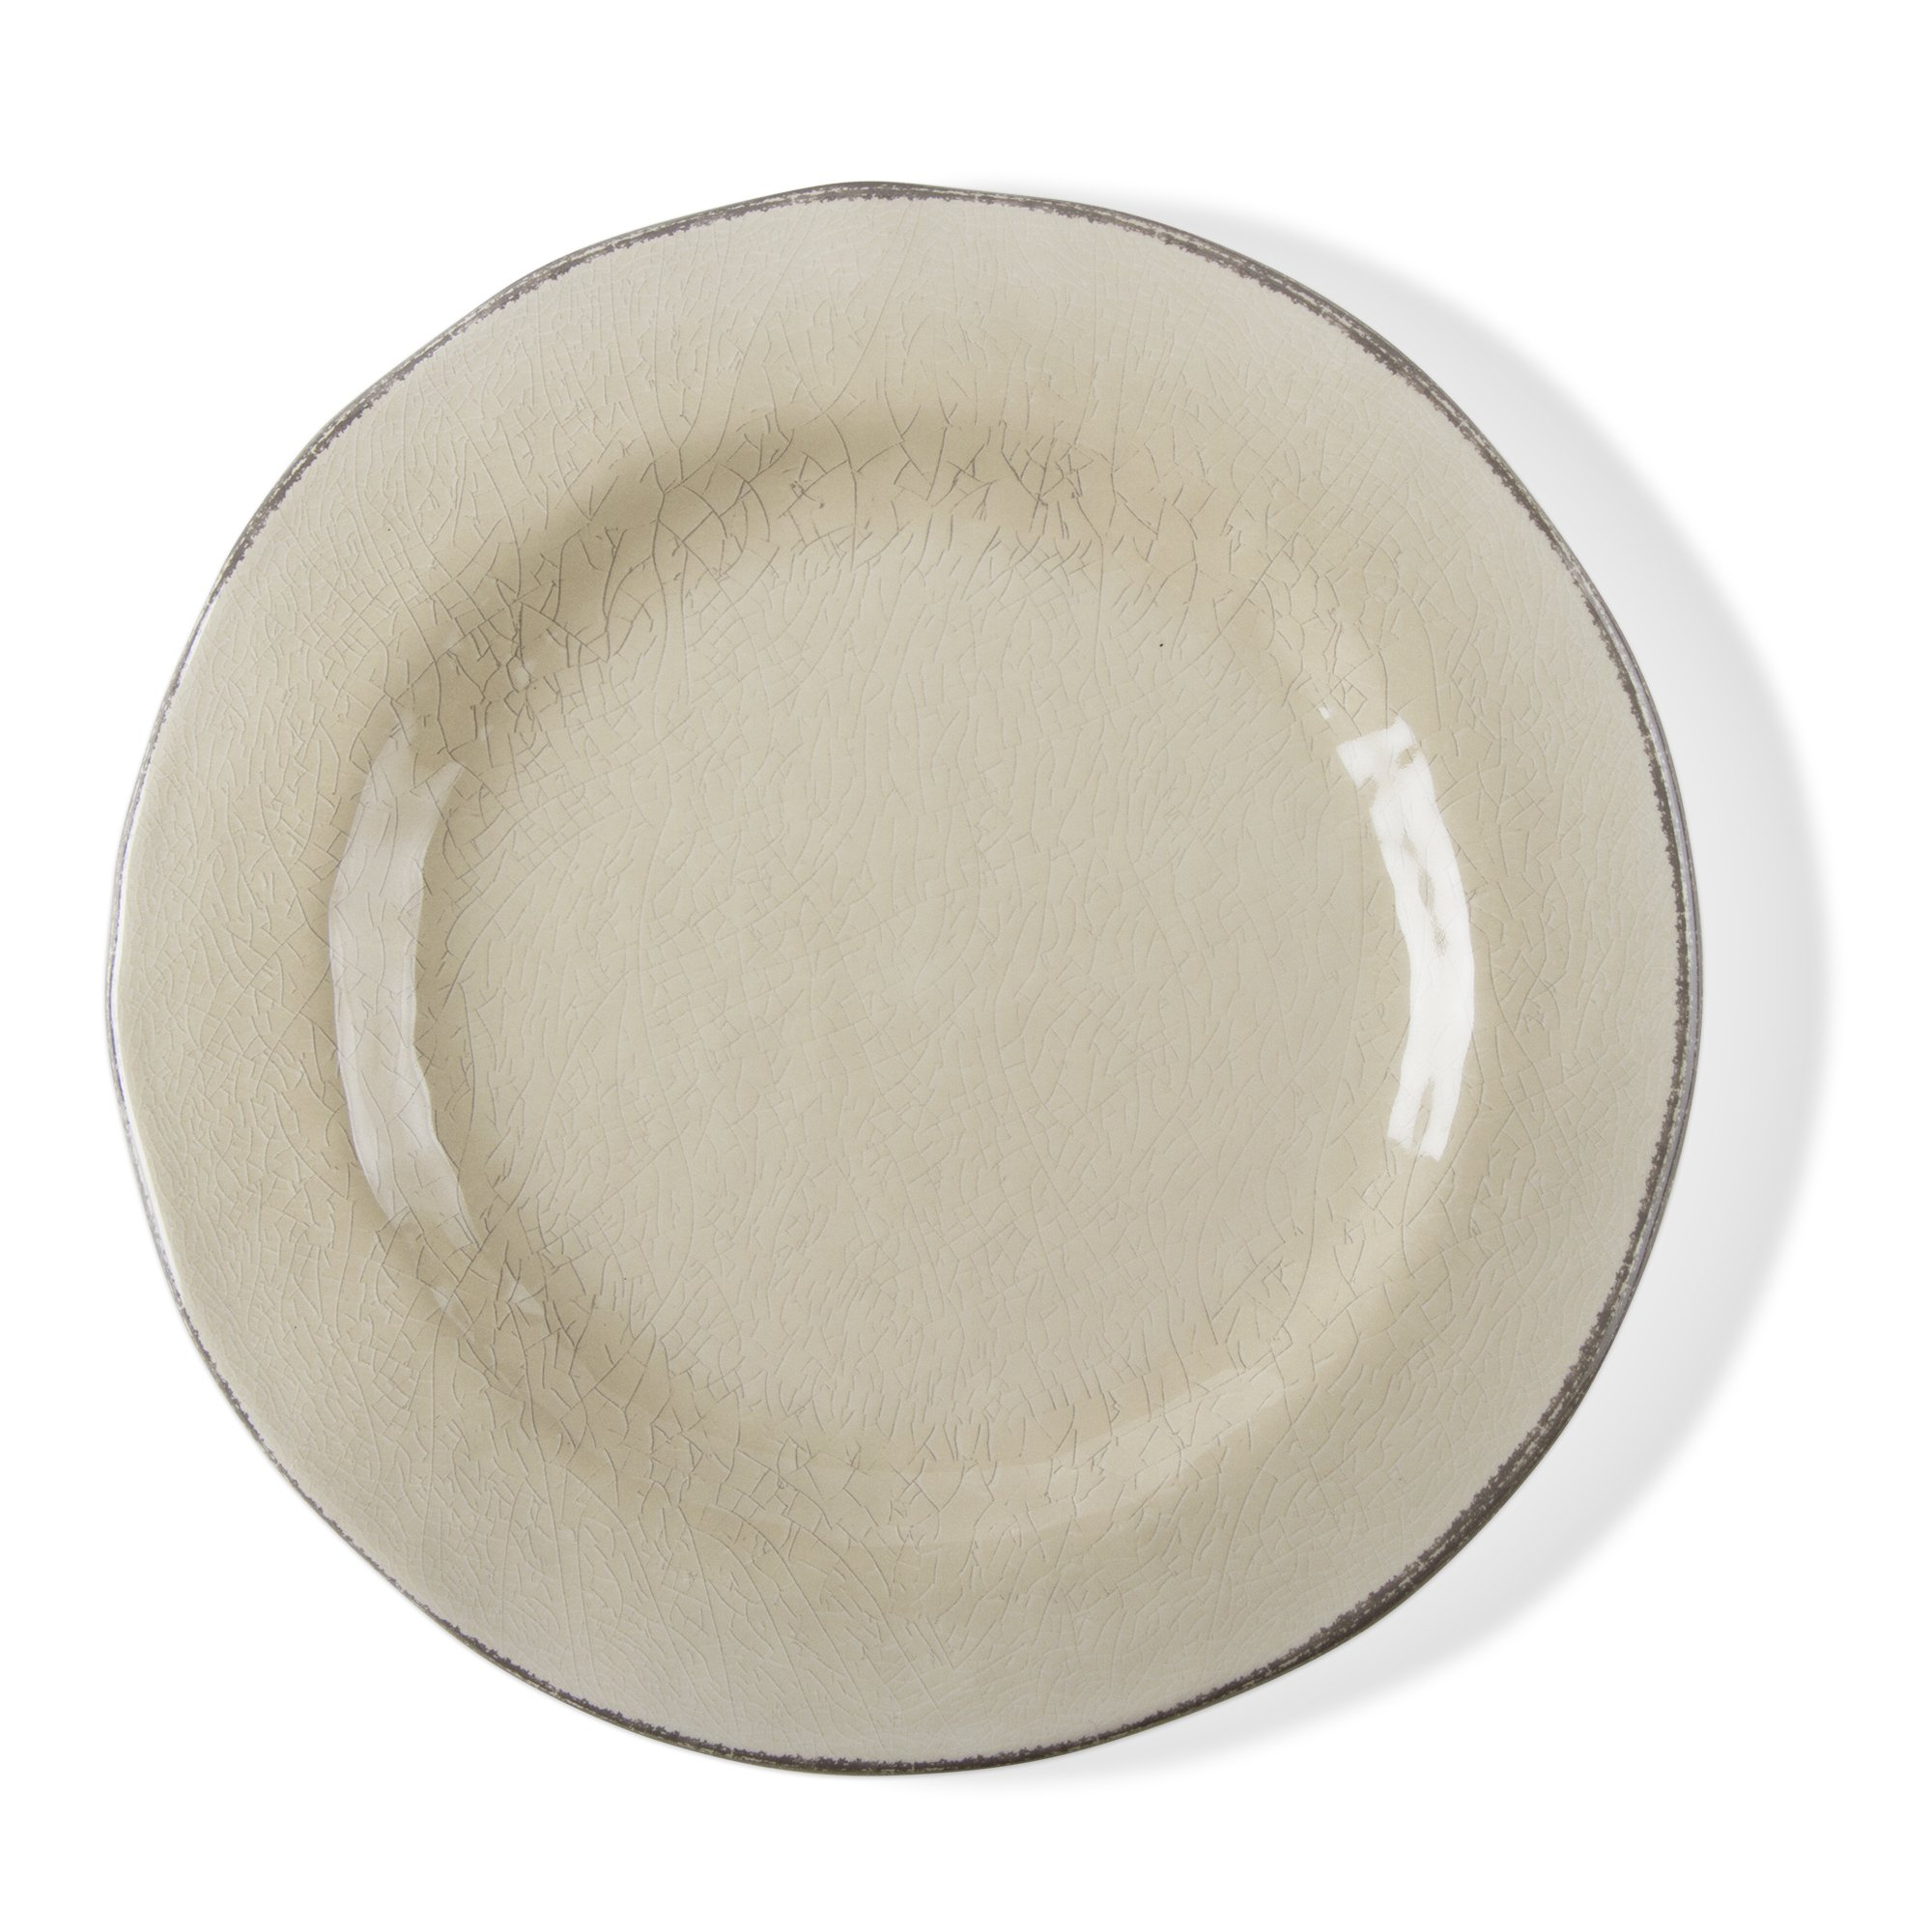 tag - Veranda Melamine Dinner Plate, Durable, BPA-Free and Great for Outdoor or Casual Meals (Set Of 4) (Linen) by Tag